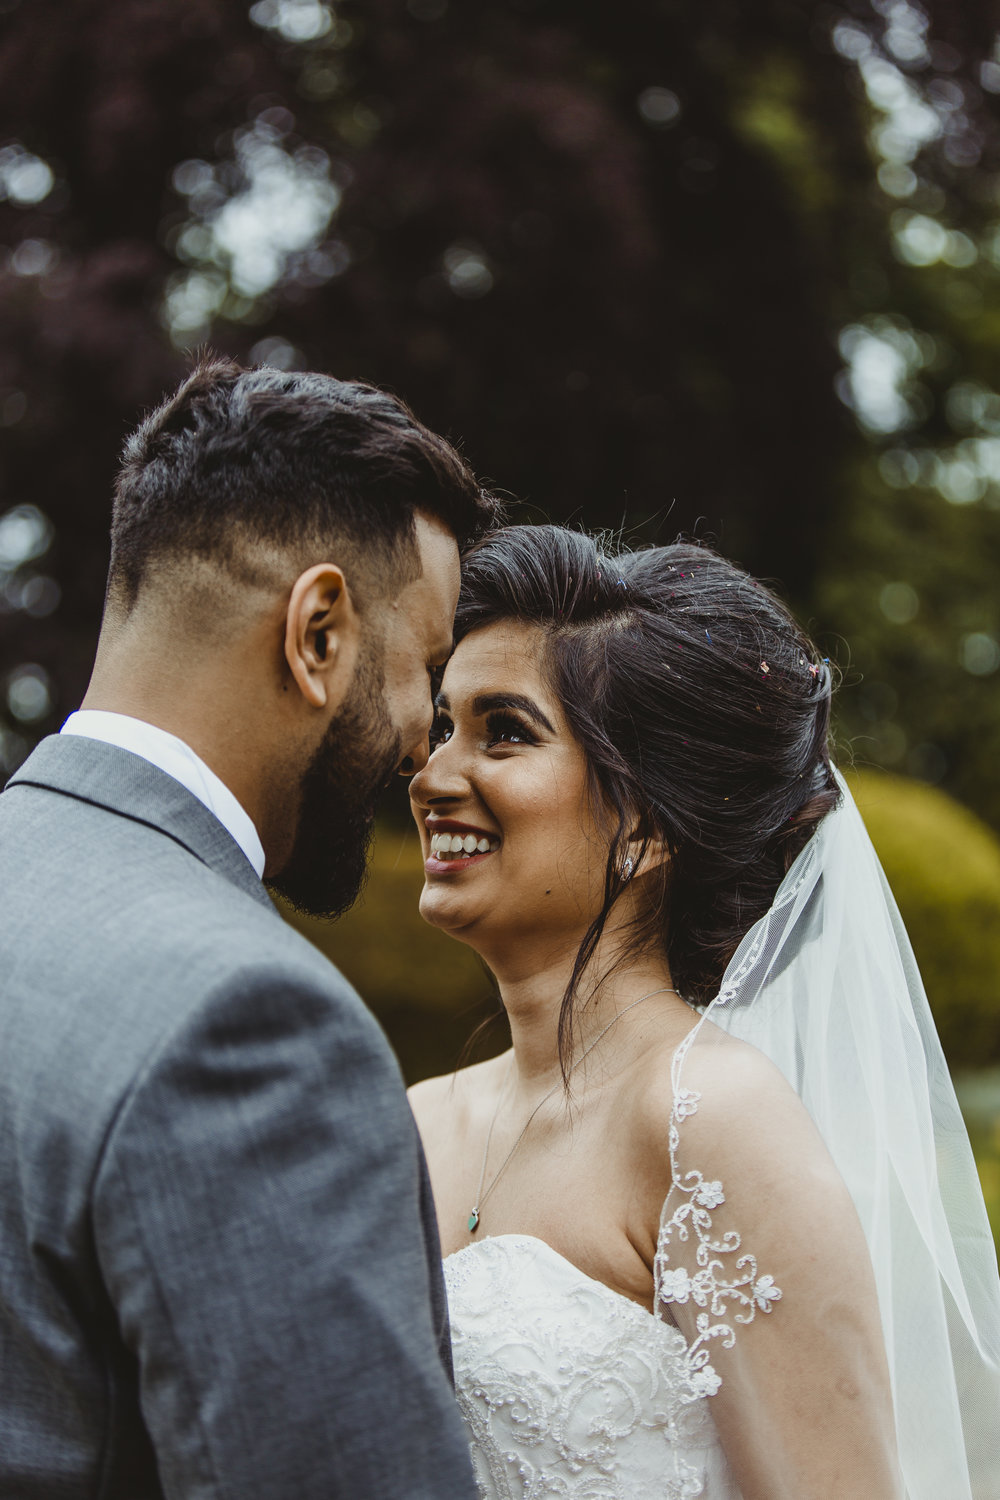 N&J_MILTON_KEYNES_WEDDING_LONDON_PHOTOGRAPHER_ASIAN_WEDDING-572.JPG